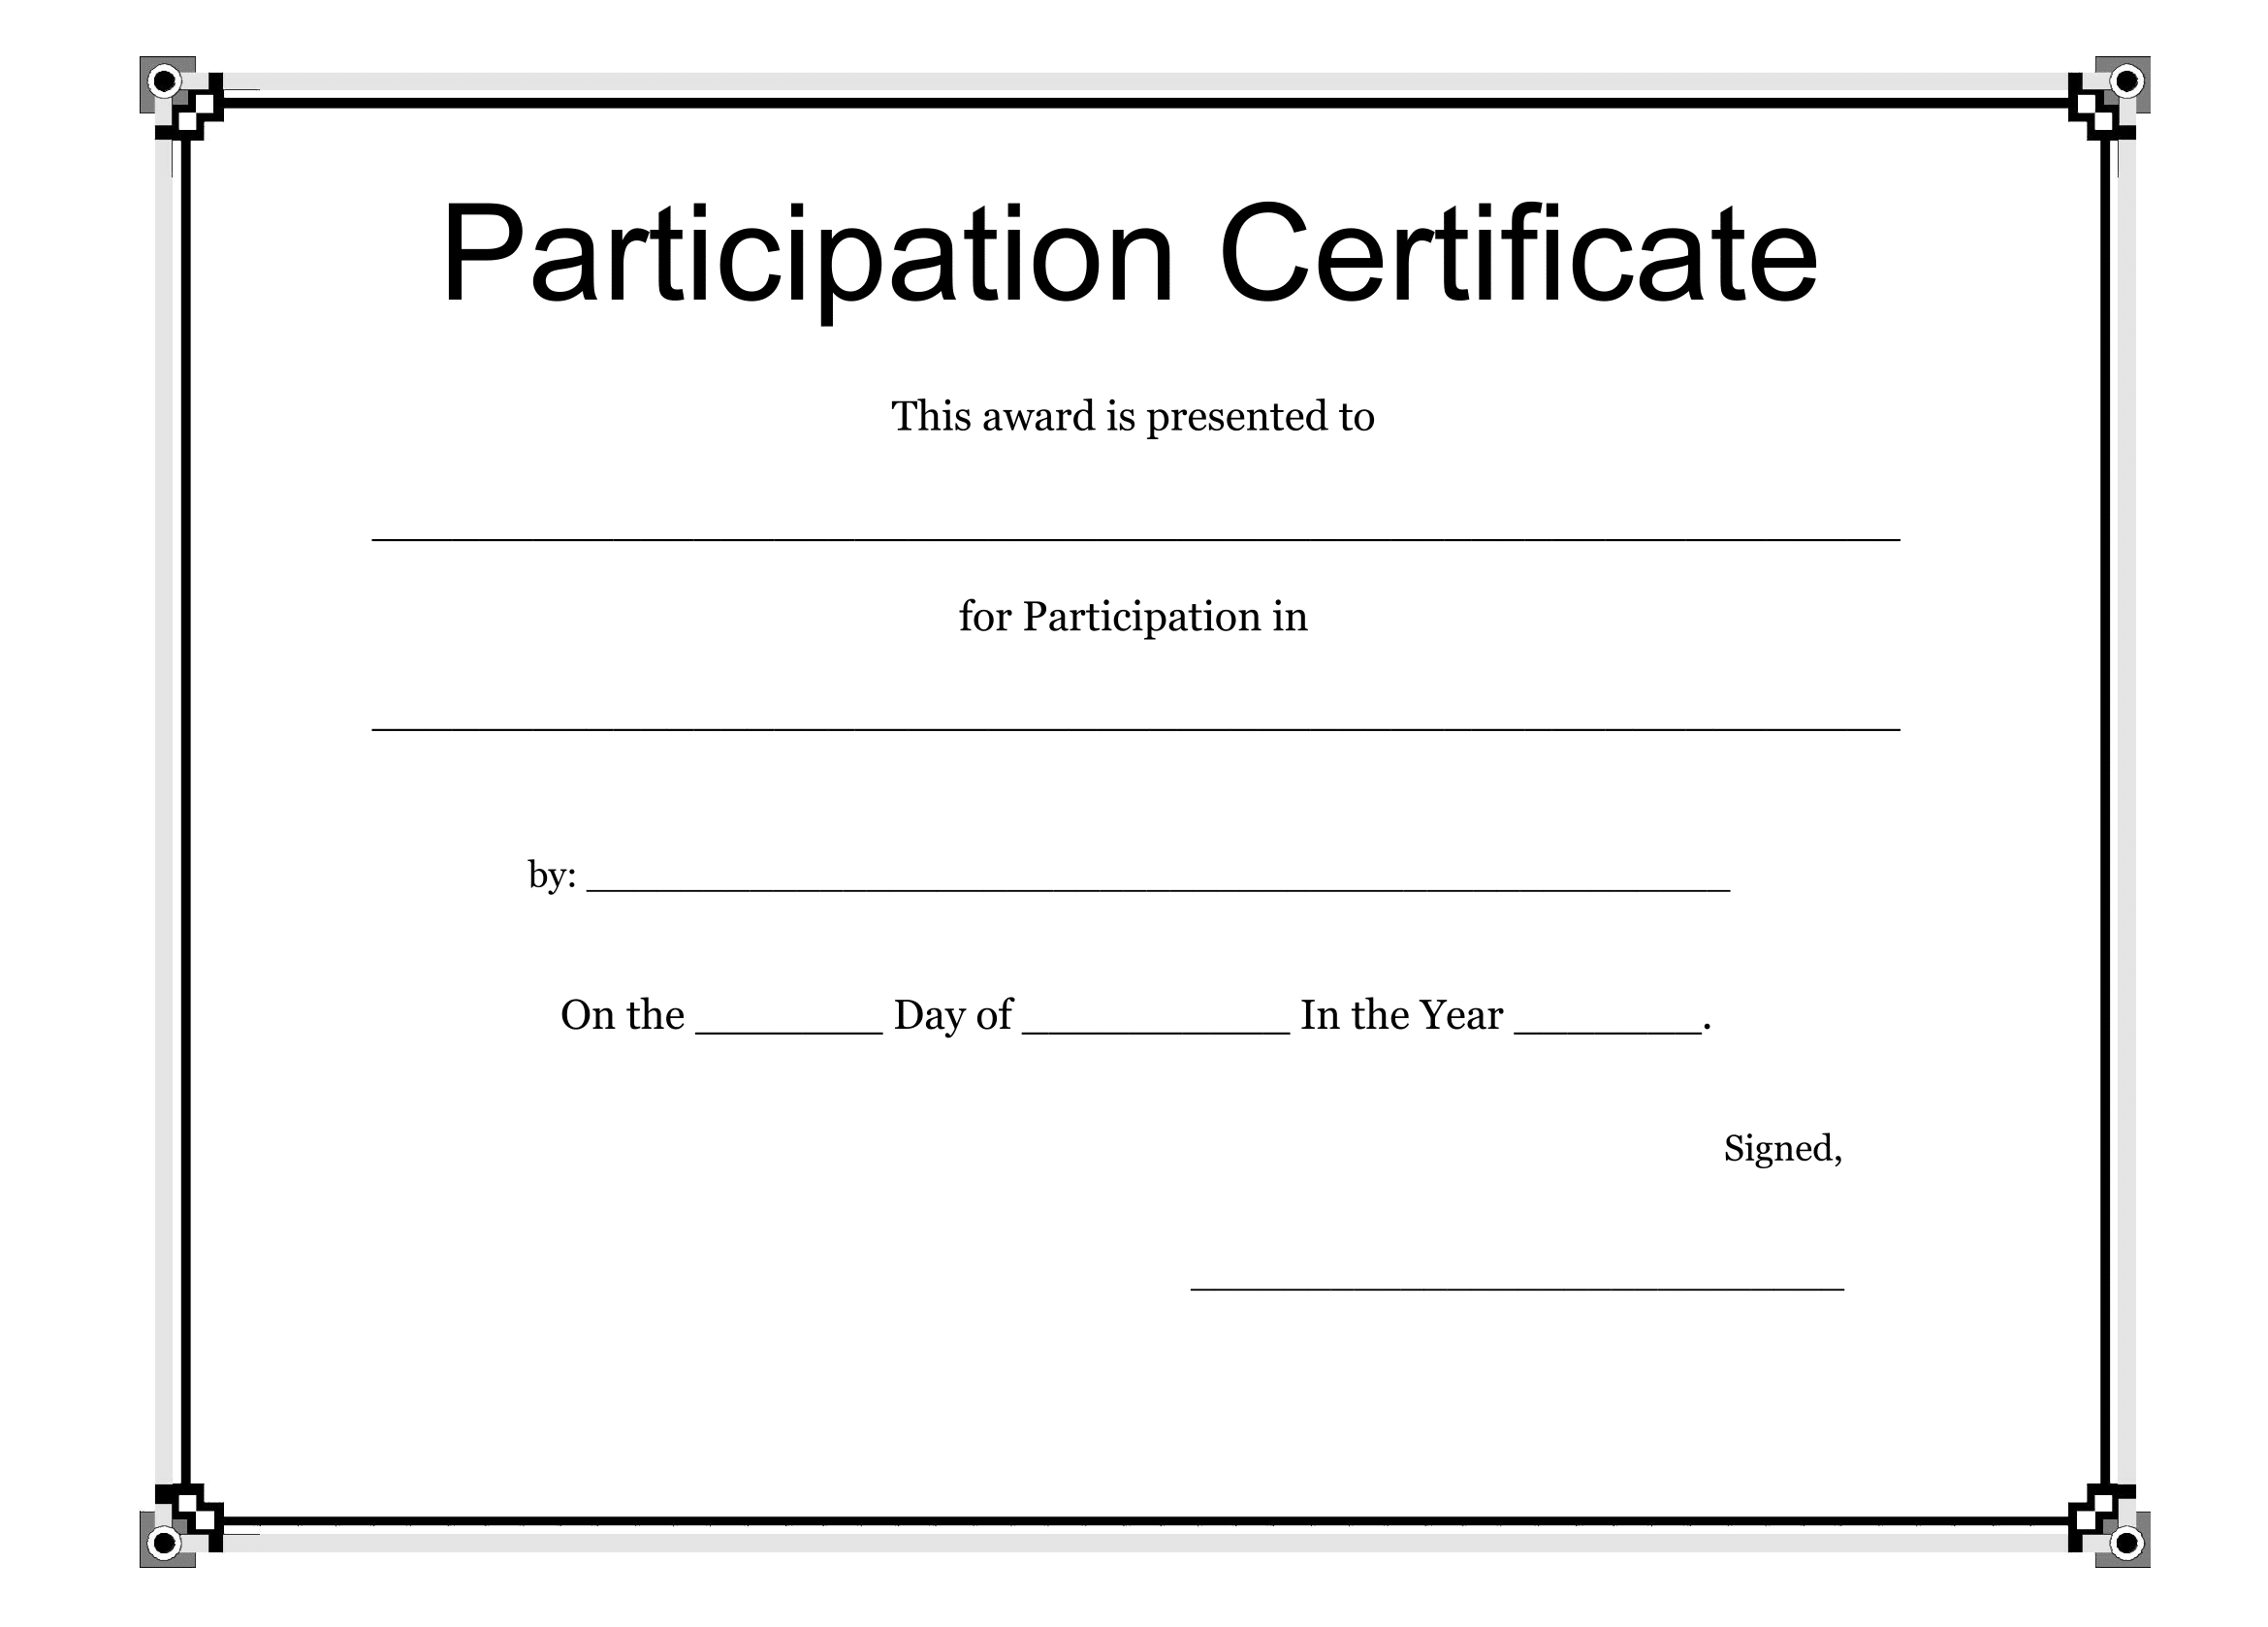 certification of participation free template - participation certificate template free download